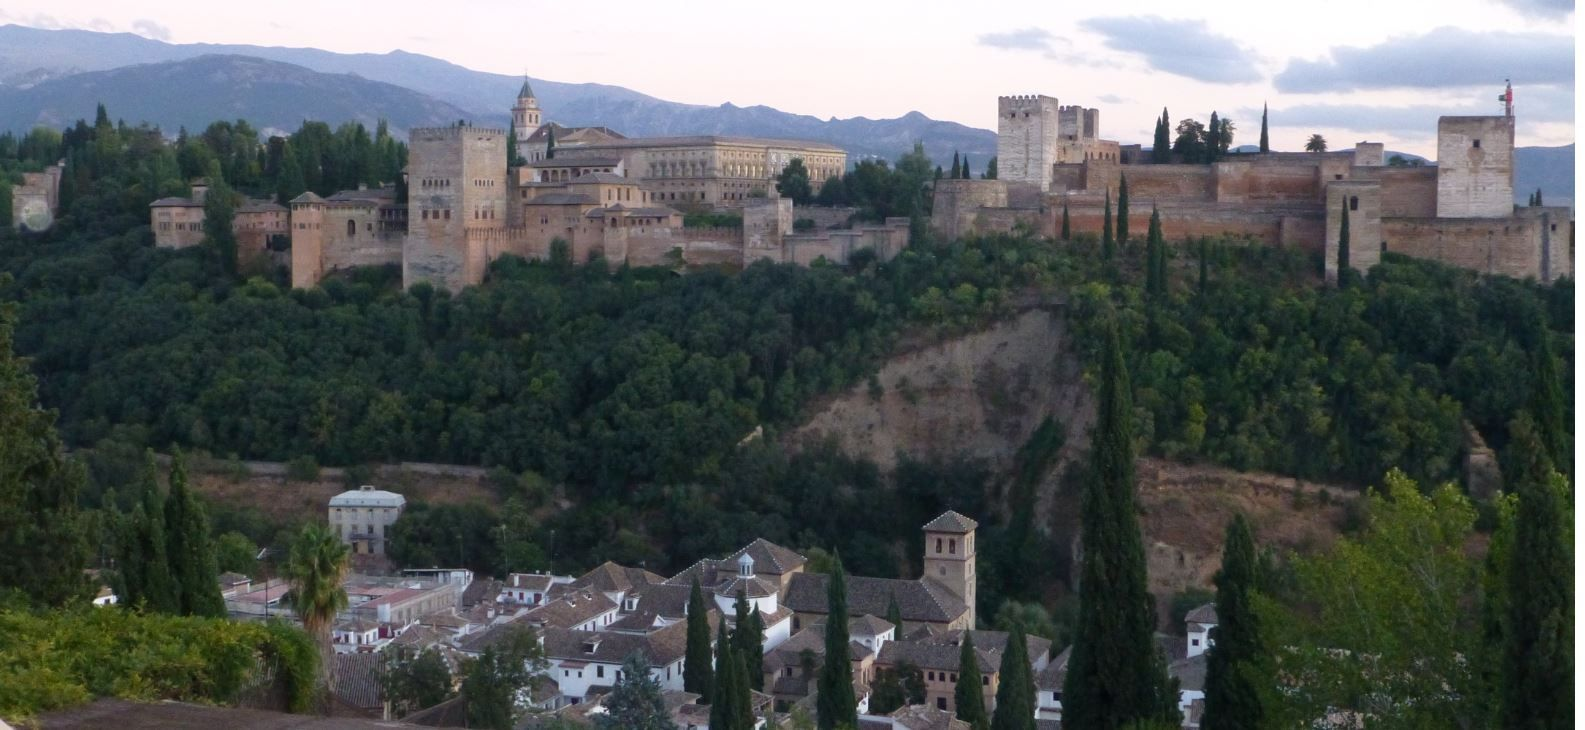 Magnificent Mansions - The Alhambra